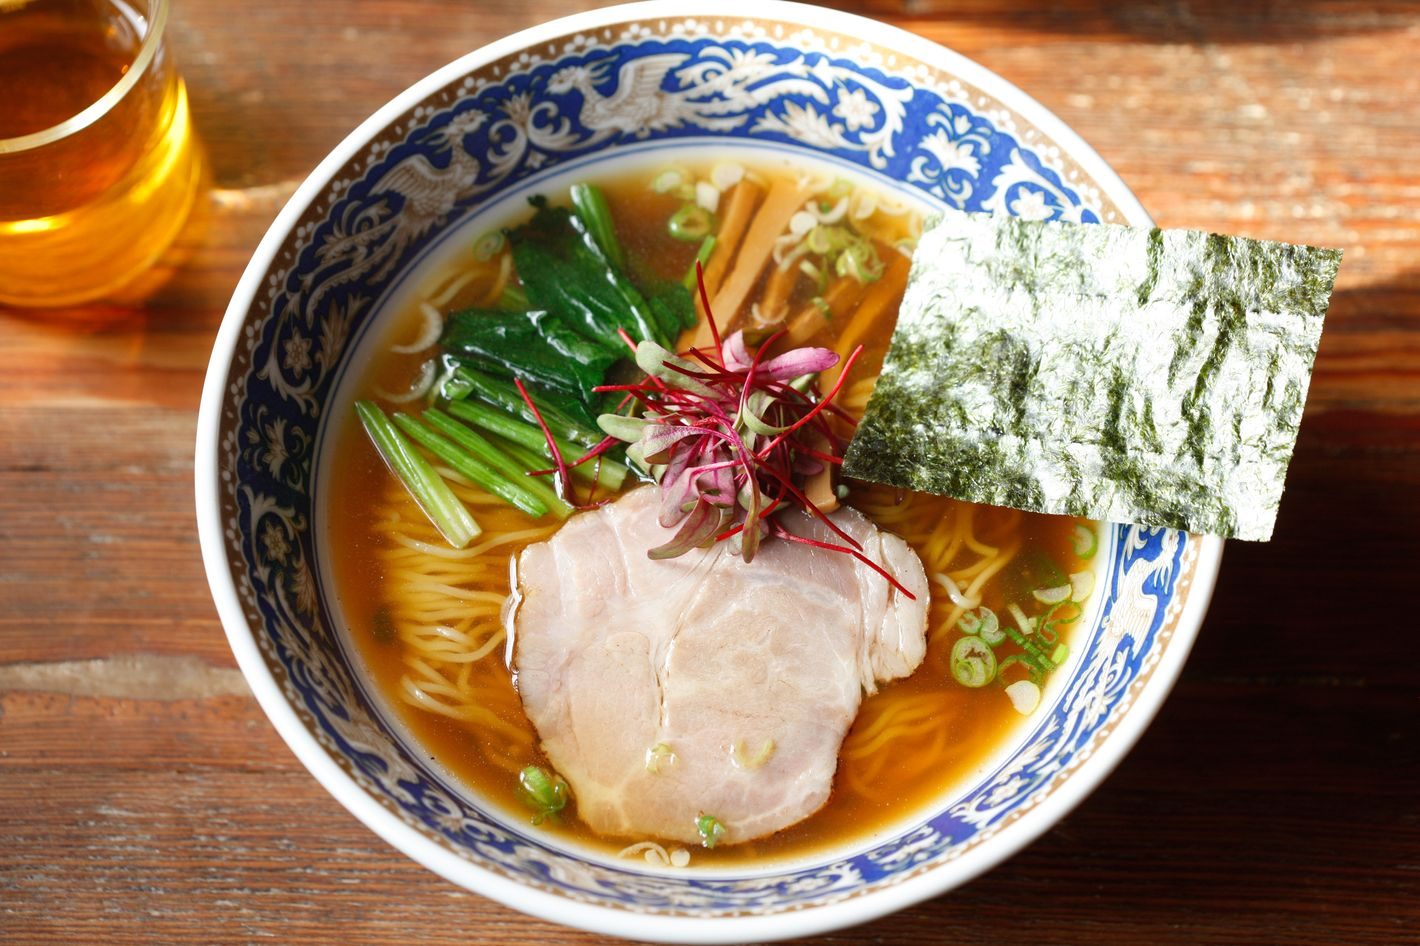 The torigara ramen is made with chashu, menma (pickled bamboo shoots), and spinach.